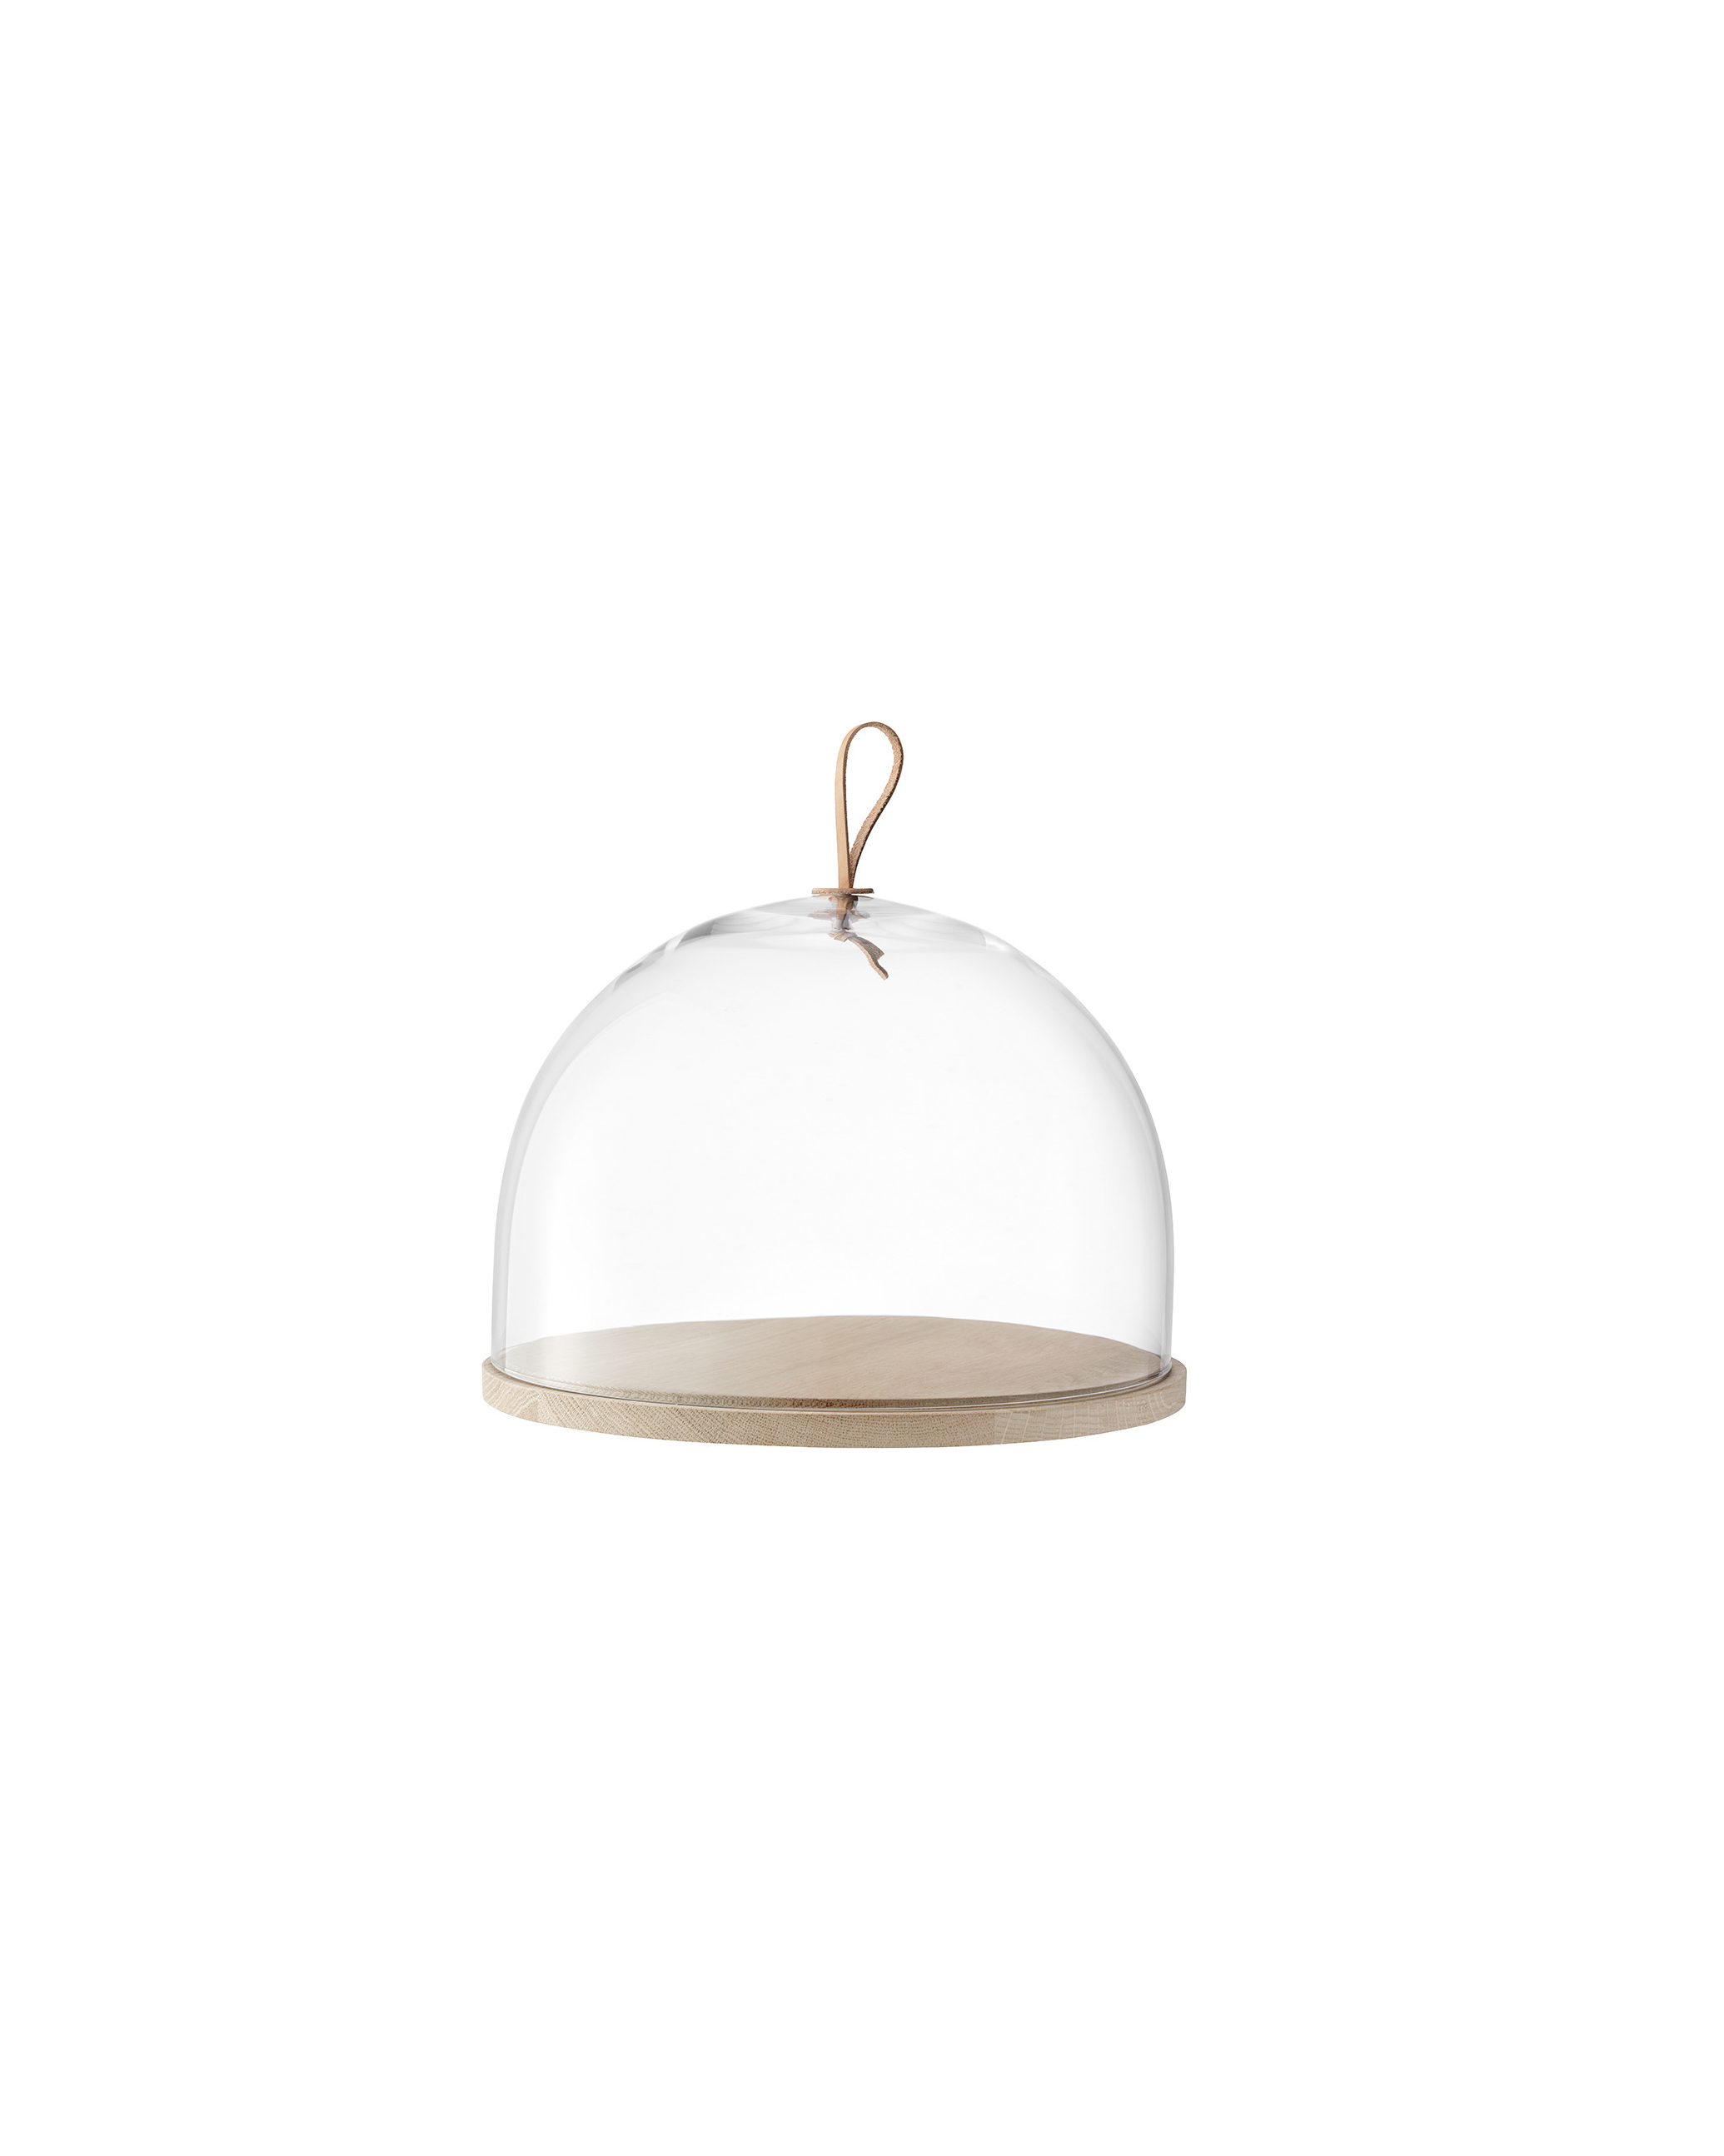 hollowware anniversary gifts dome cheese plate ivalo